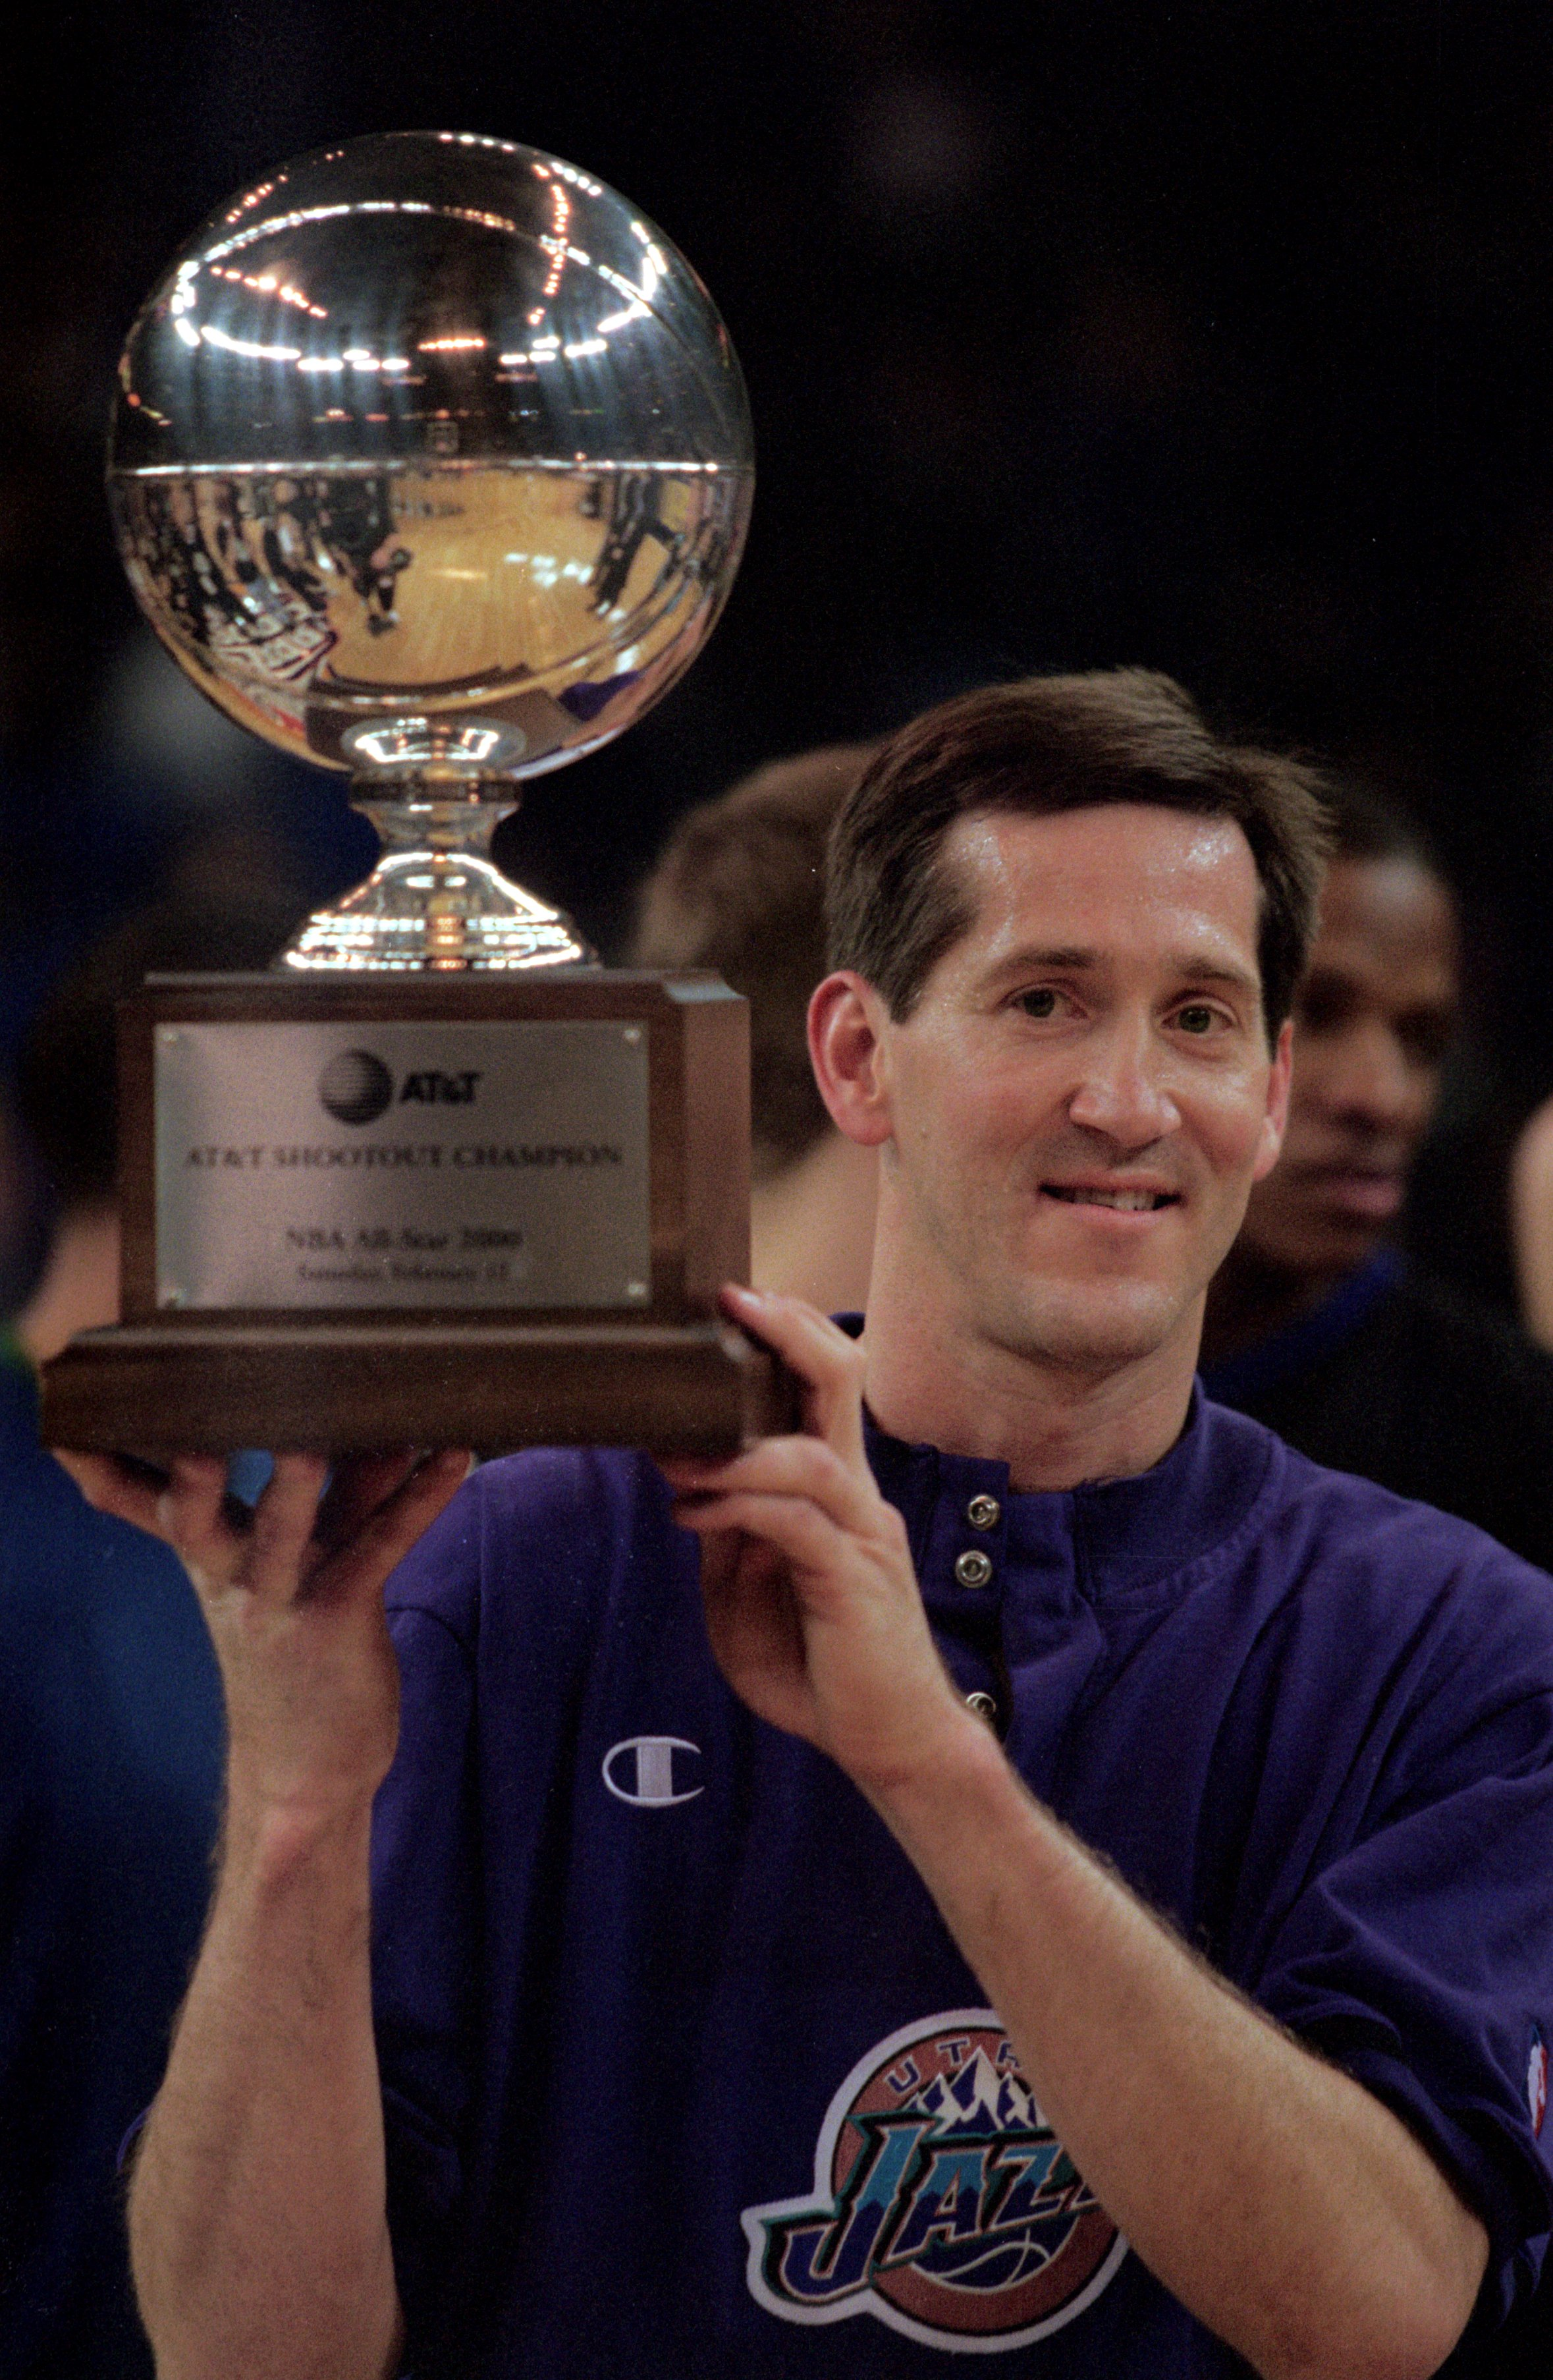 12 Feb 2000: Jeff Hornacek of the Utah Jazz holds up the trophy after winning the NBA Allstar Game AT&T Shootout Contest at the Oakland Coliseum in Oakland, California.   Mandatory Credit: Jed Jacobsohn  /Allsport